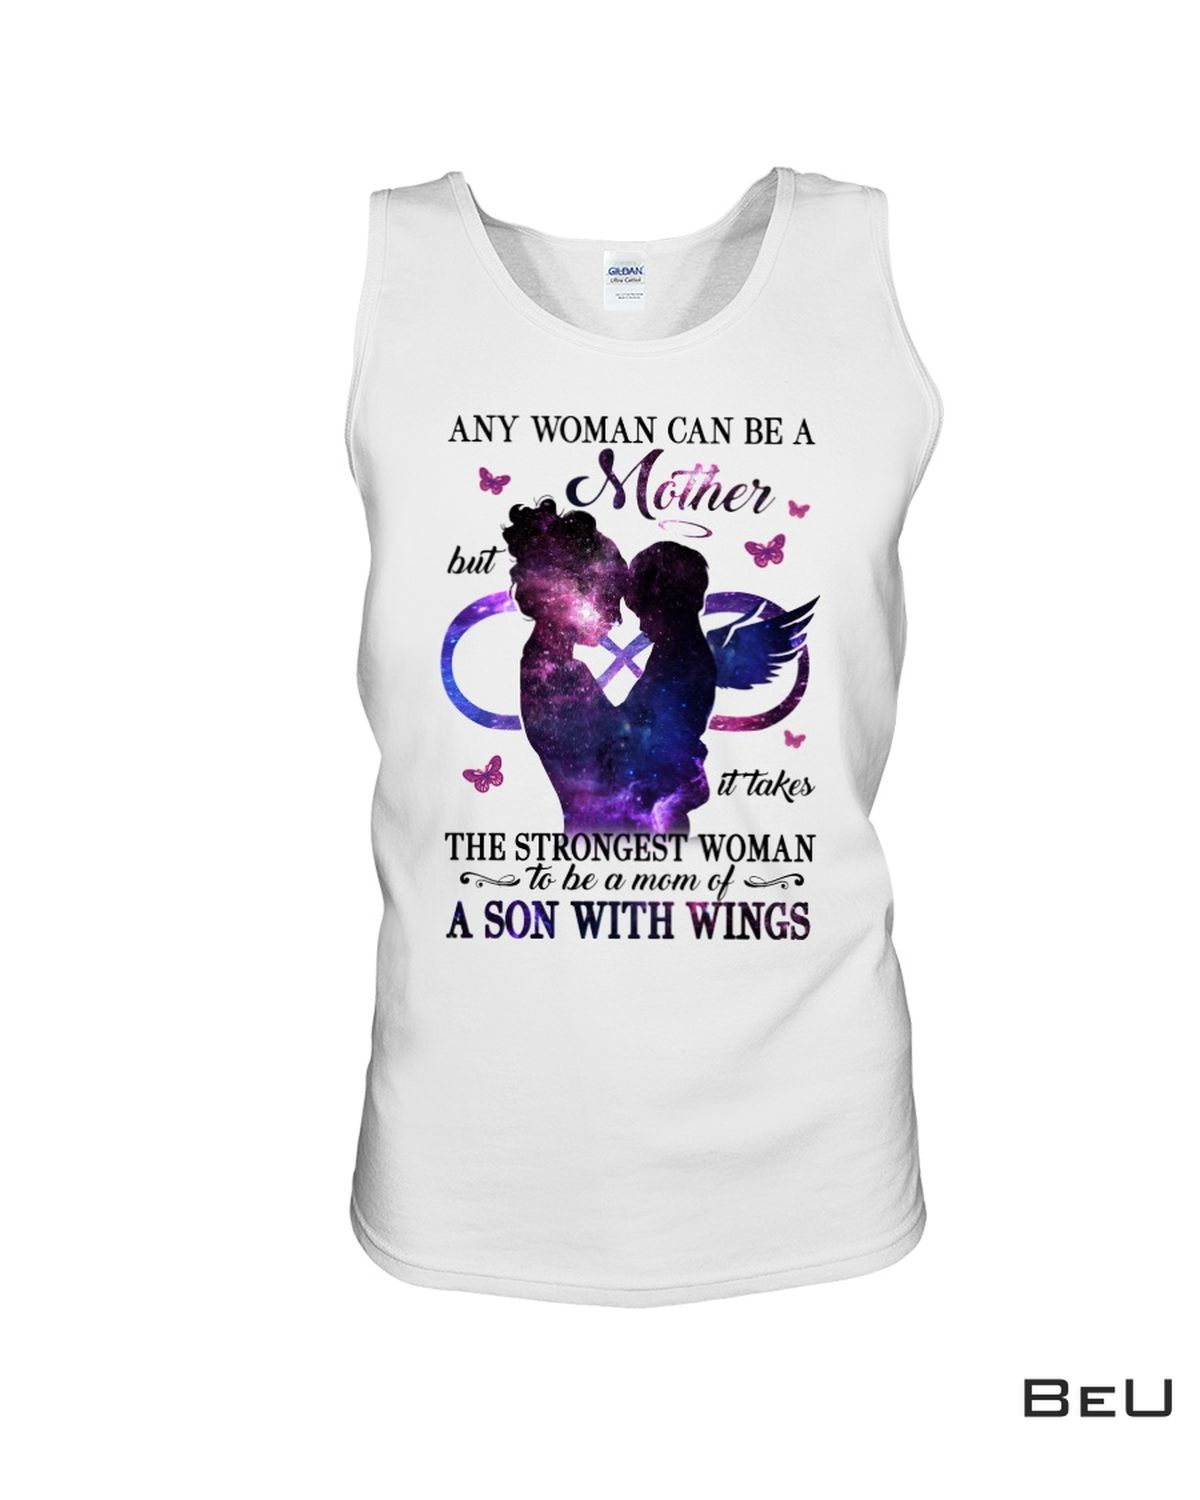 Best Any Woman Can Be A Mother But It Takes A Strongest Woman To Be A Mom Of A Son With Wings Shirt, hoodie, tank top